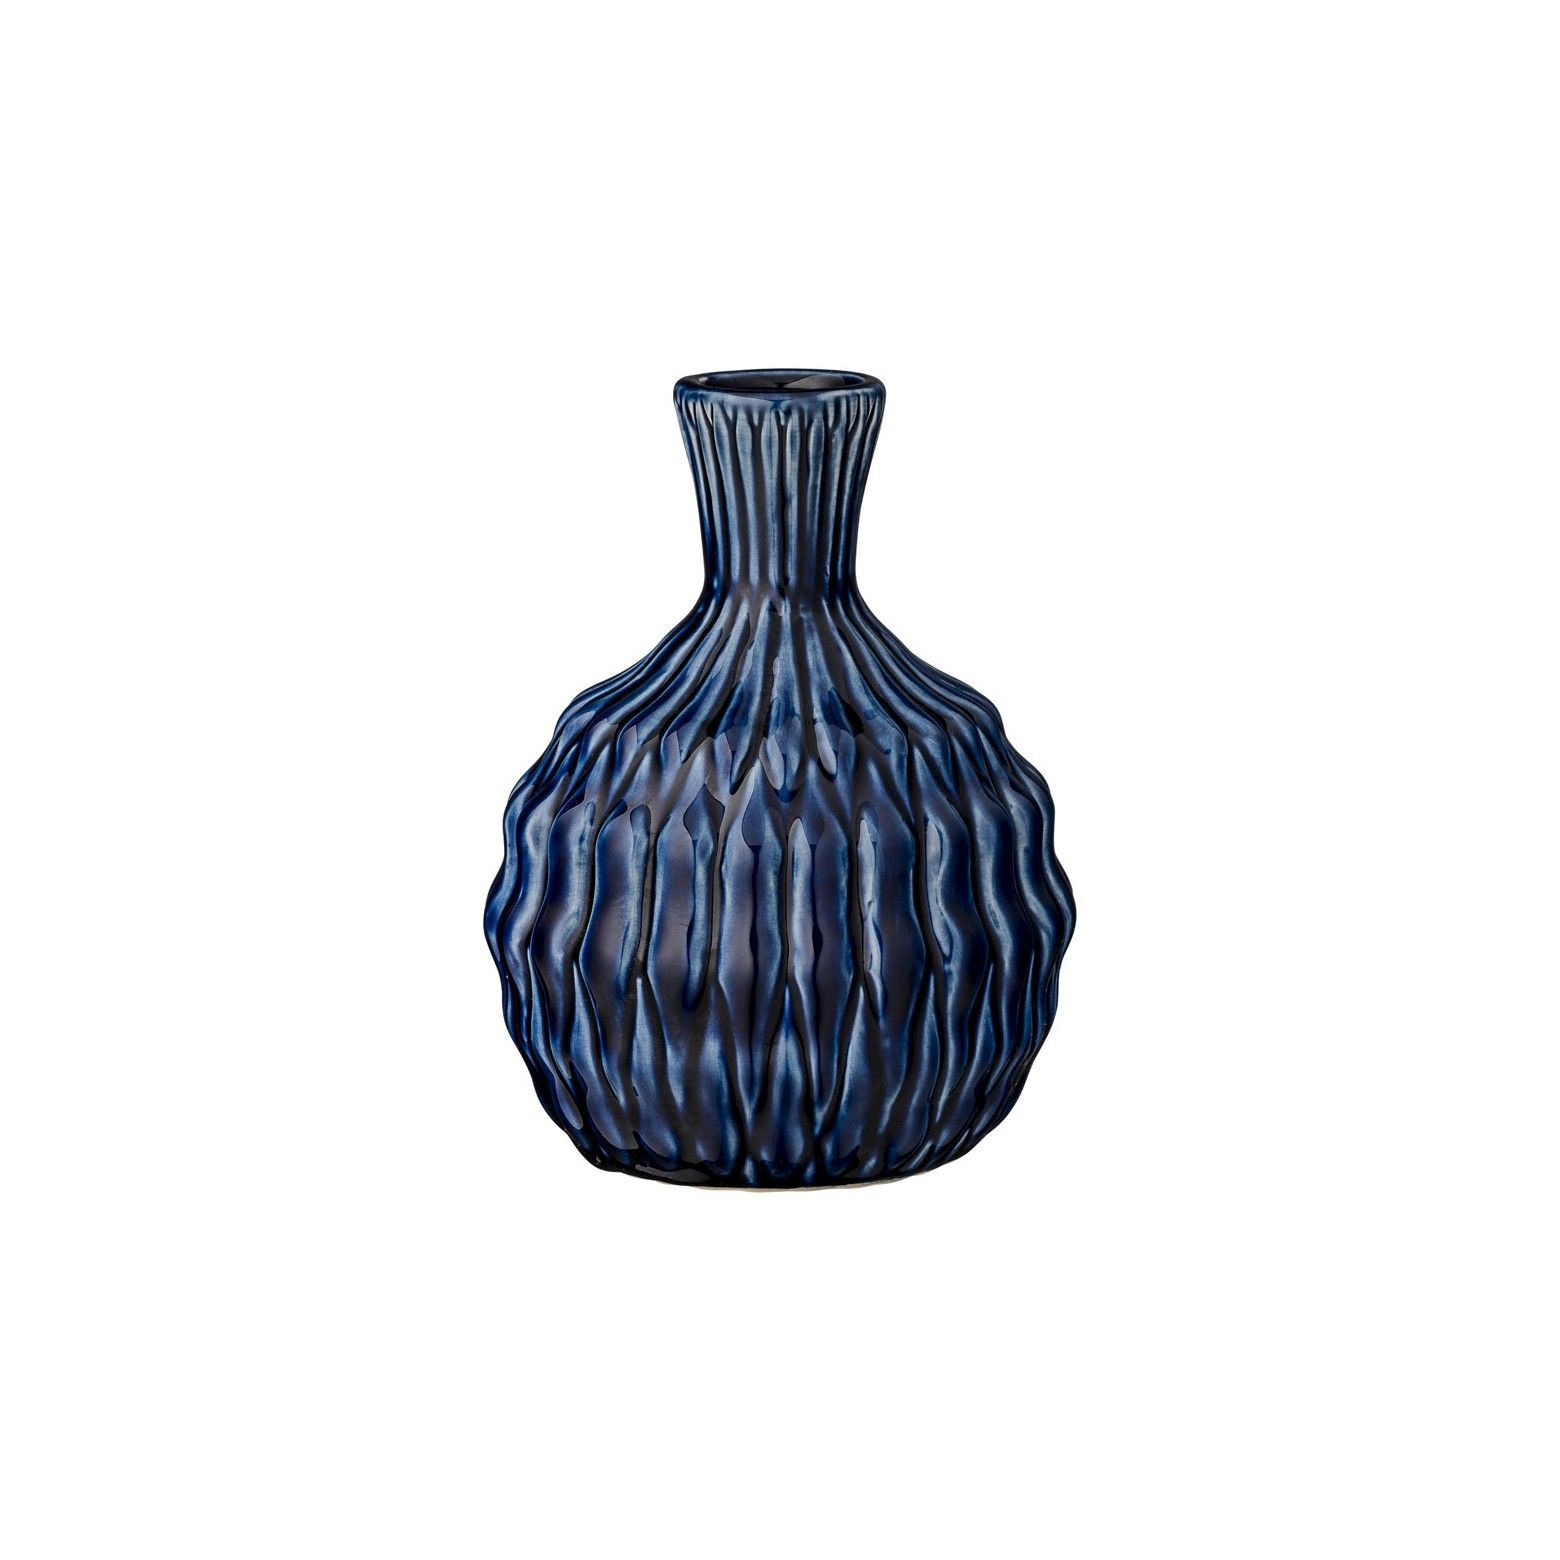 tall floor vases target of ceramic vase navy blue 6 3r studios ceramic vase navy and for ceramic vase navy blue 6 3r studios